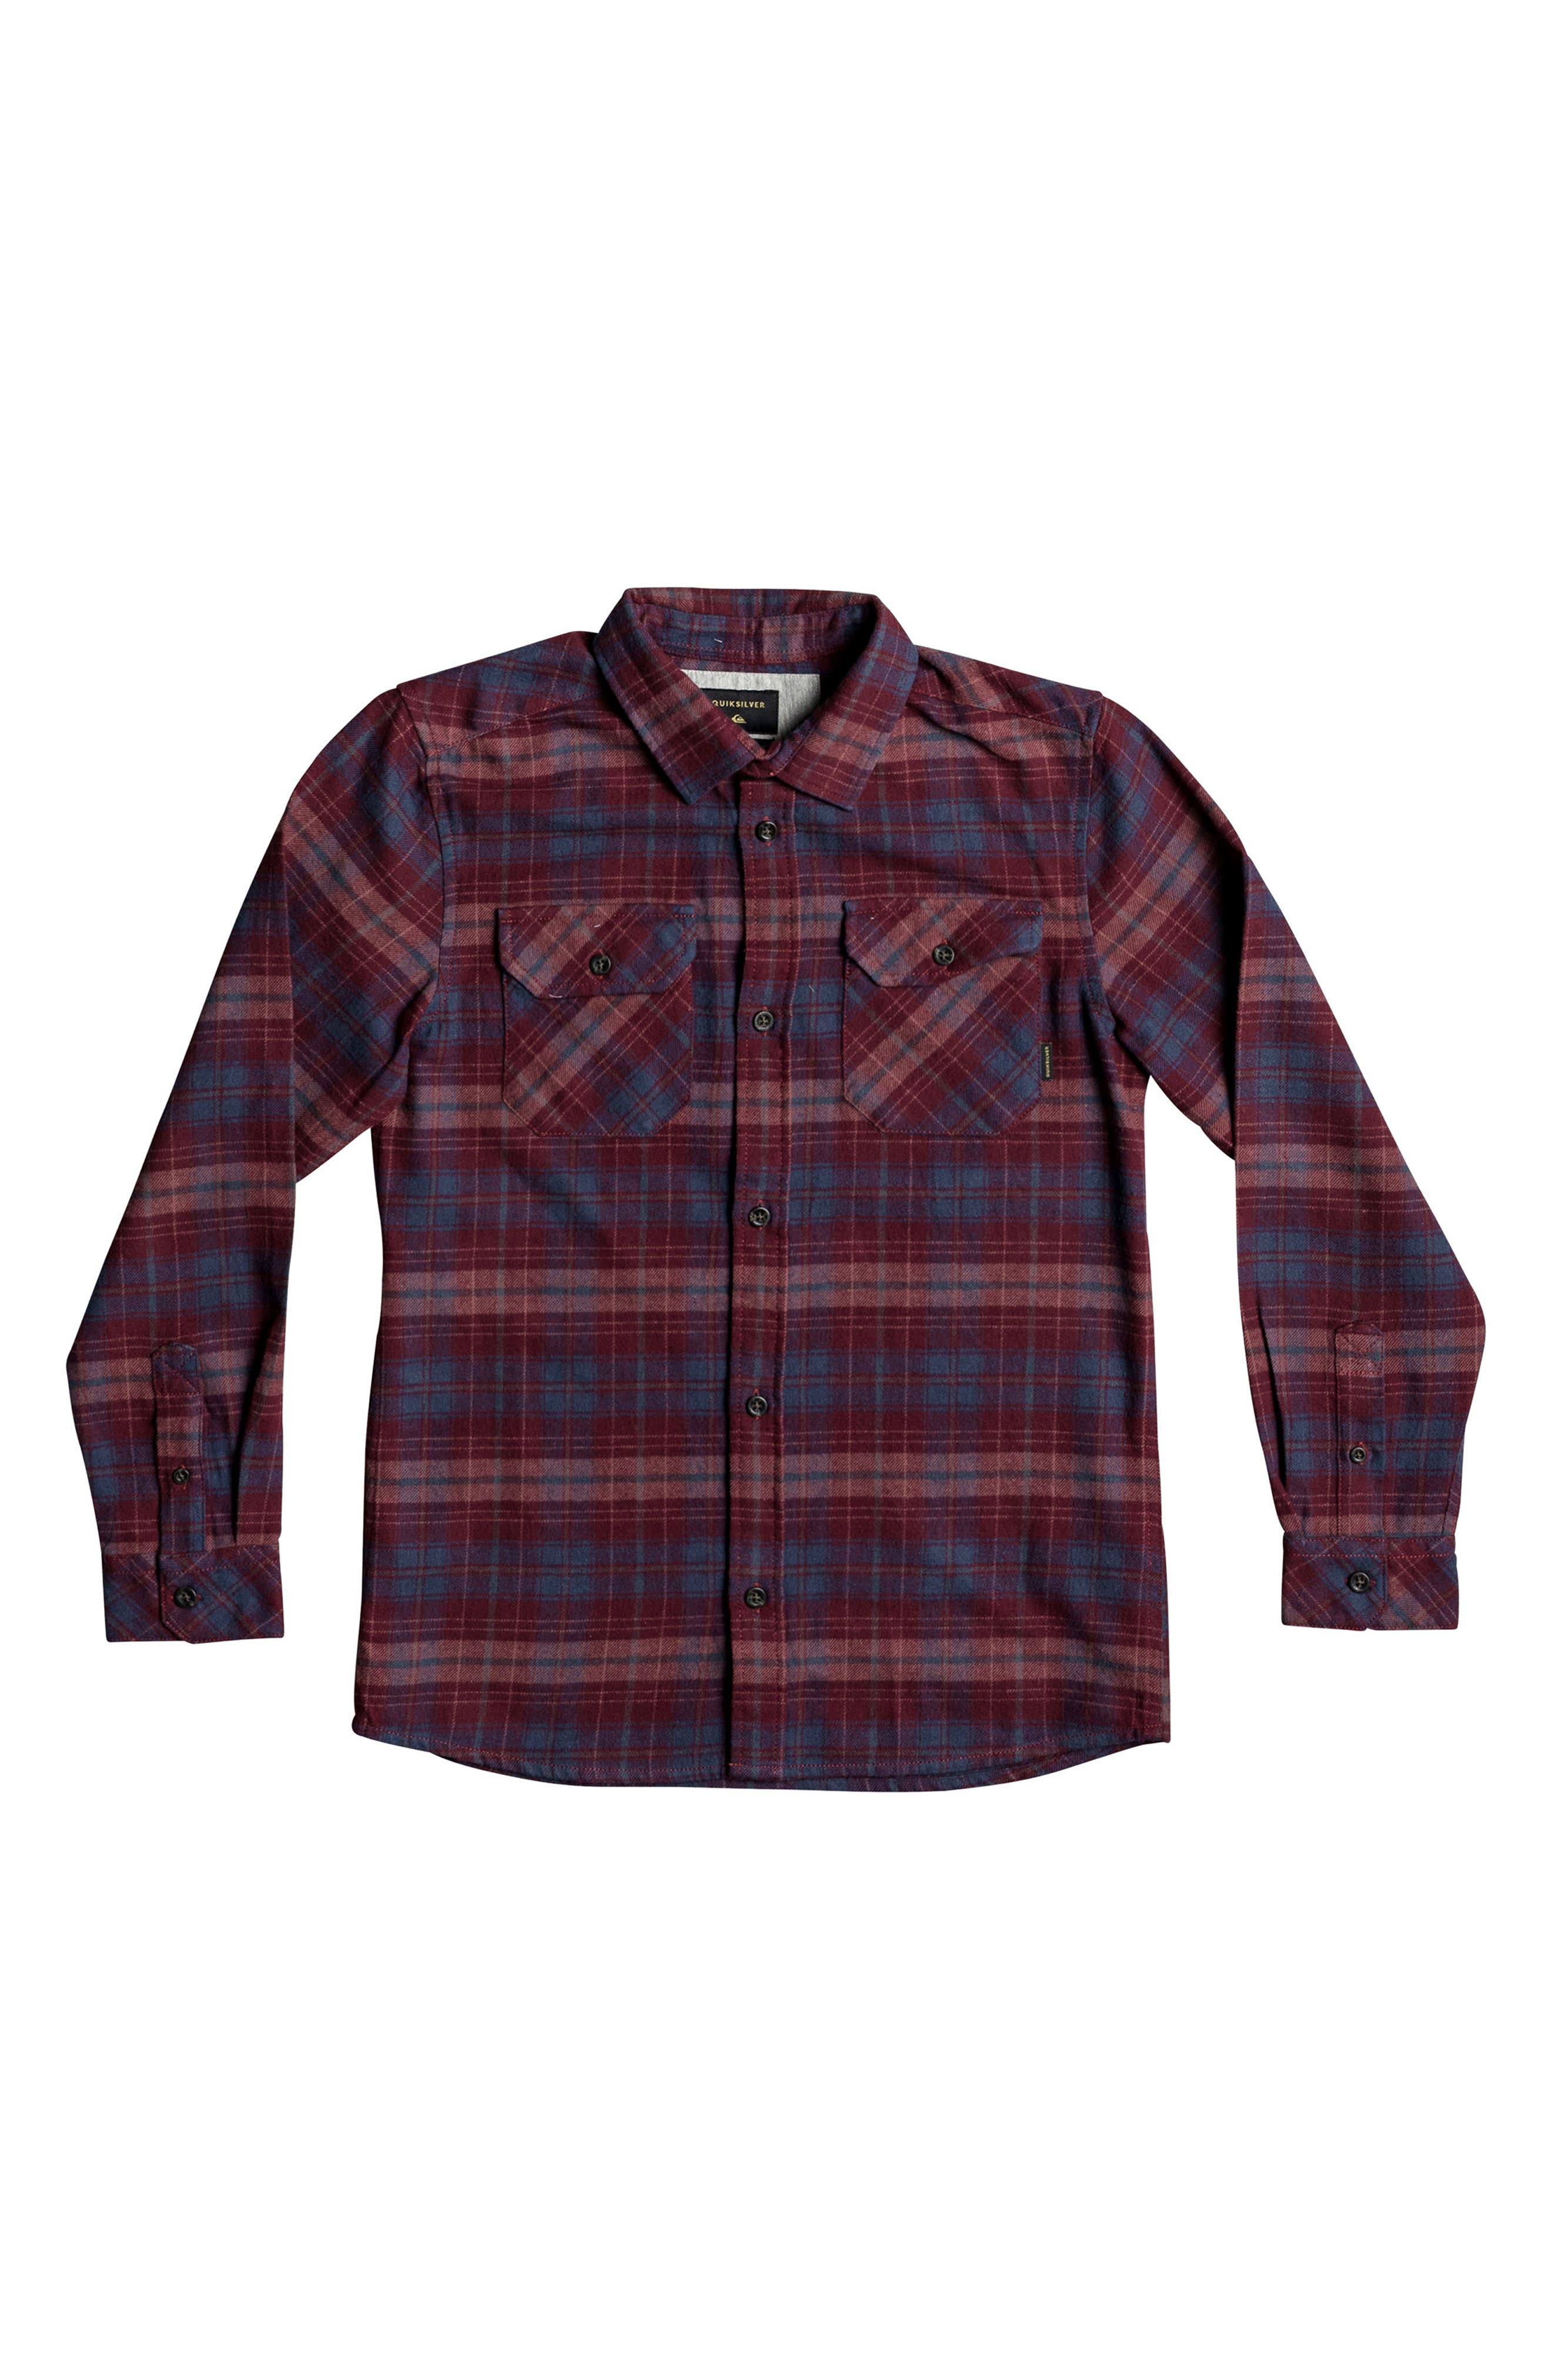 Fitzspeere Plaid Flannel Shirt,                         Main,                         color, Winsdsor